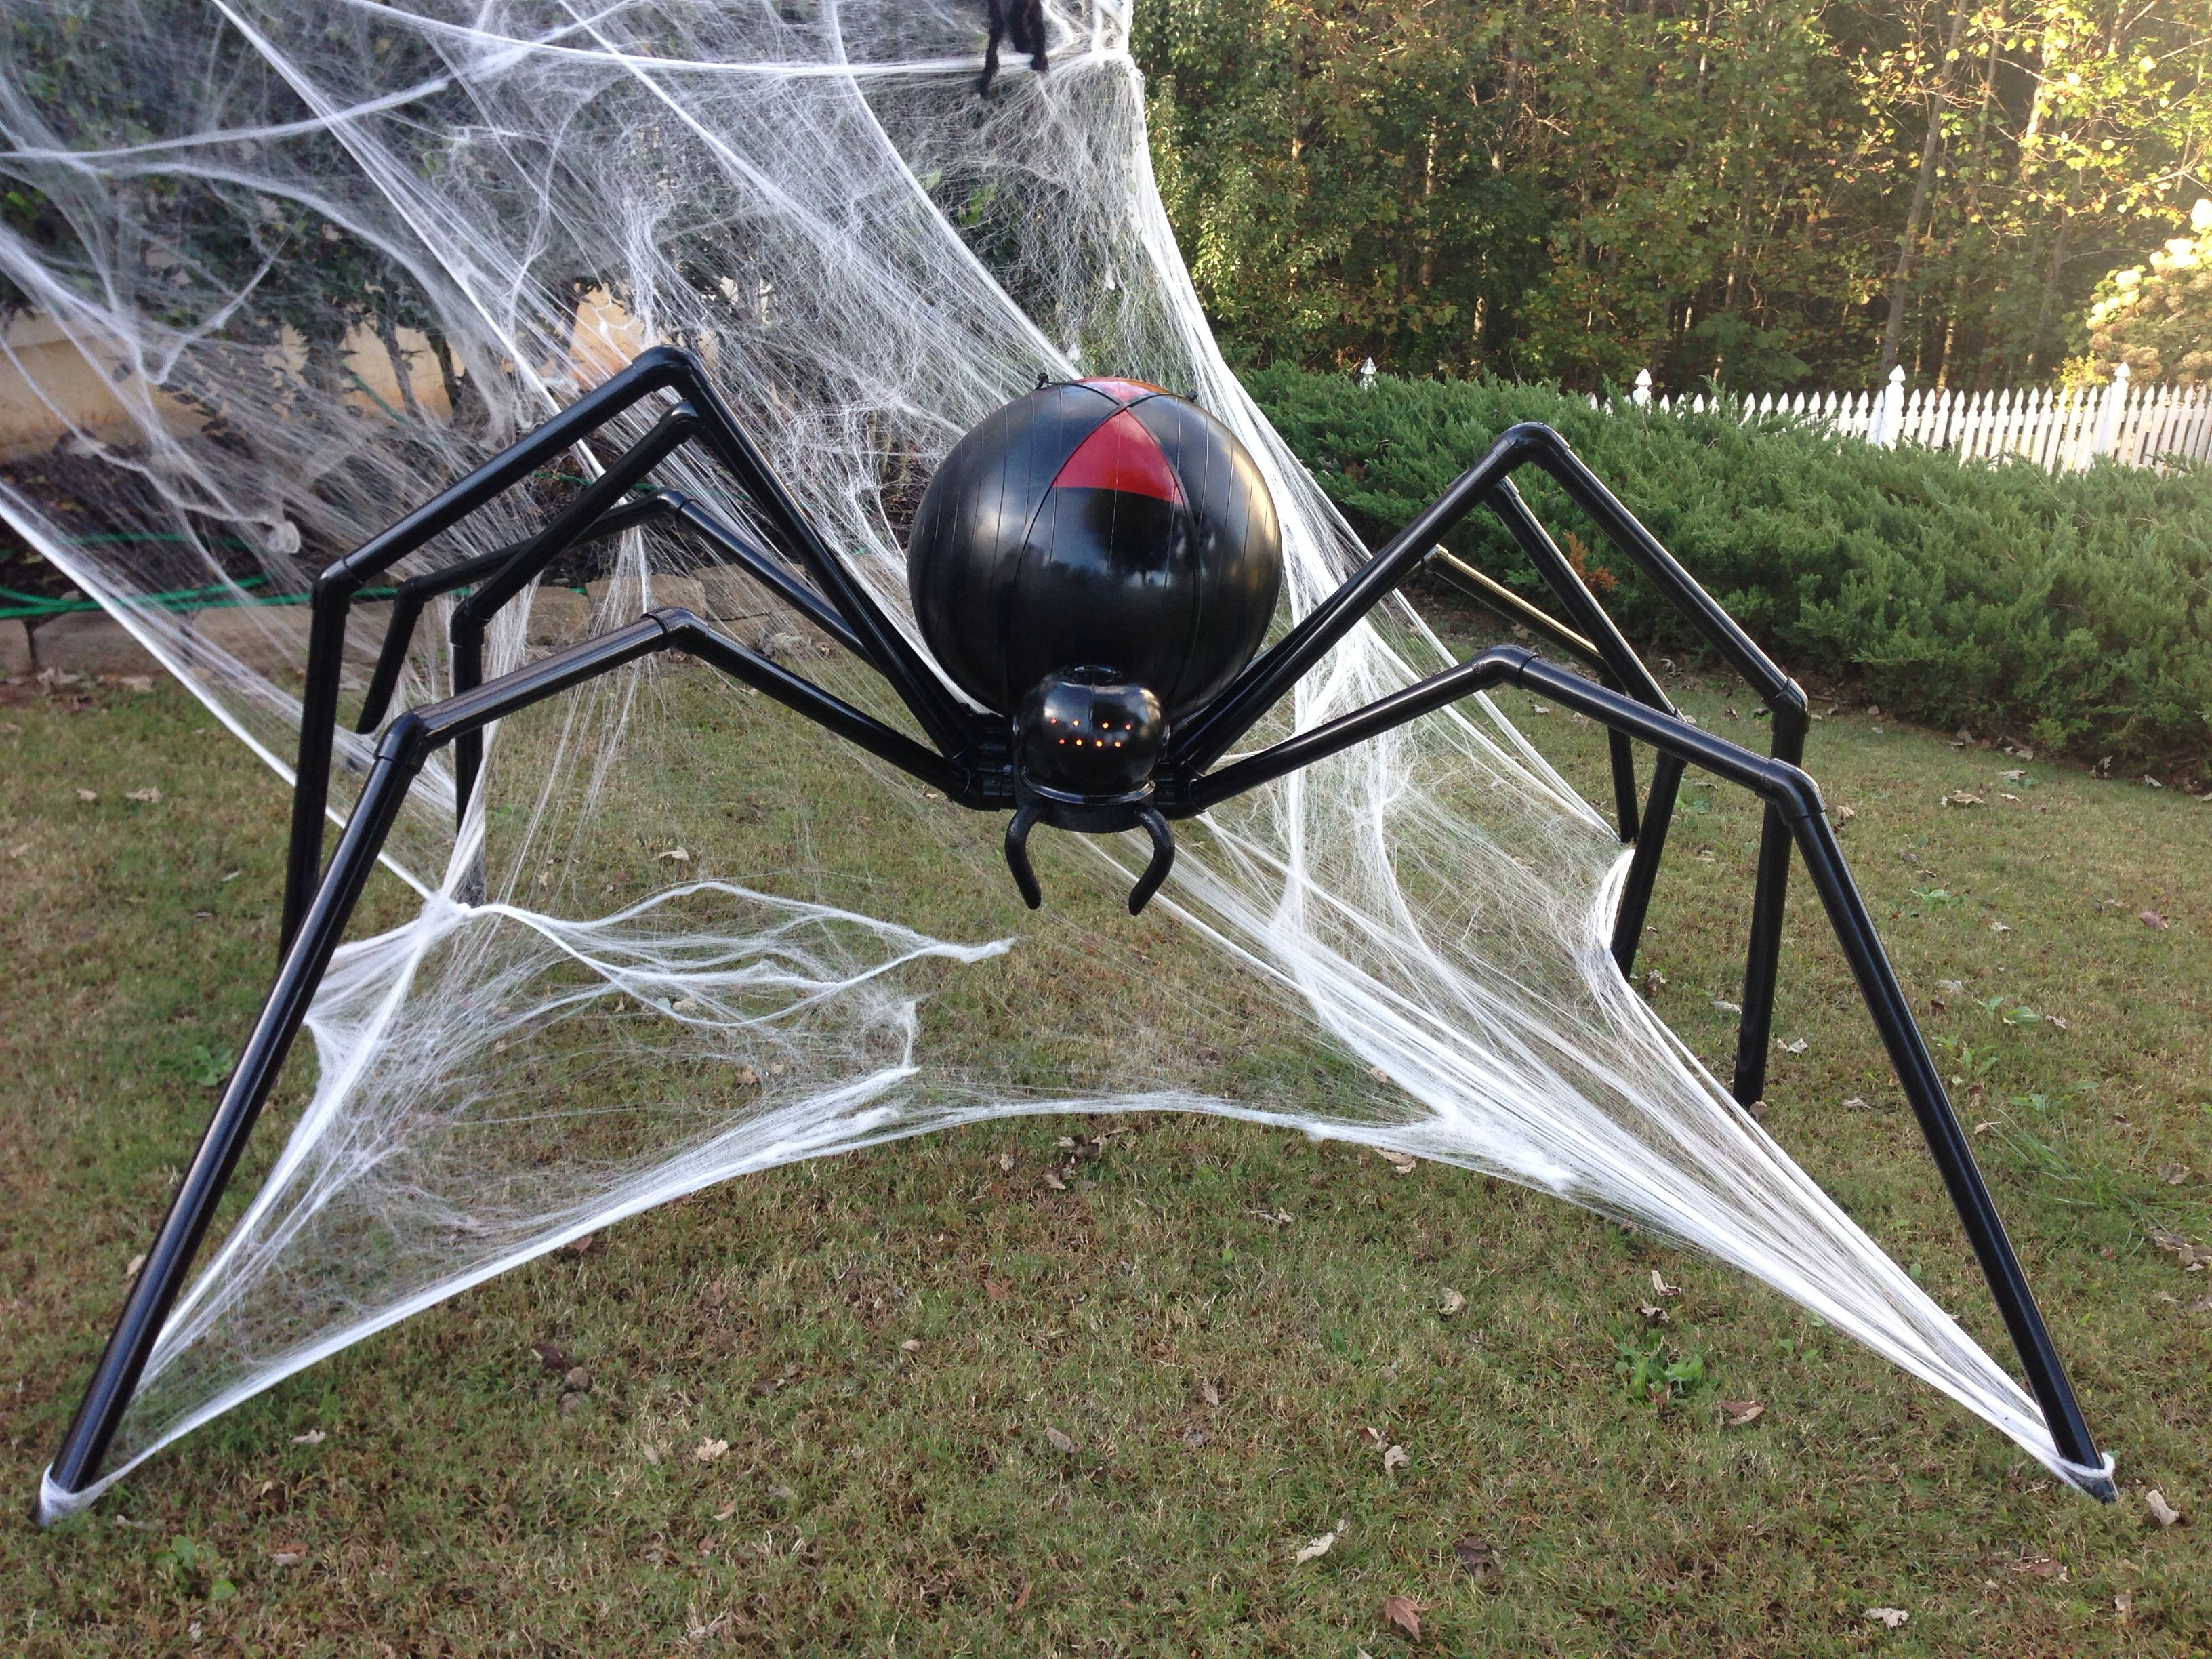 Huge Spider Halloween Decoration Scary Halloween Decorations Outdoor Halloween Outside Scary Halloween Decorations